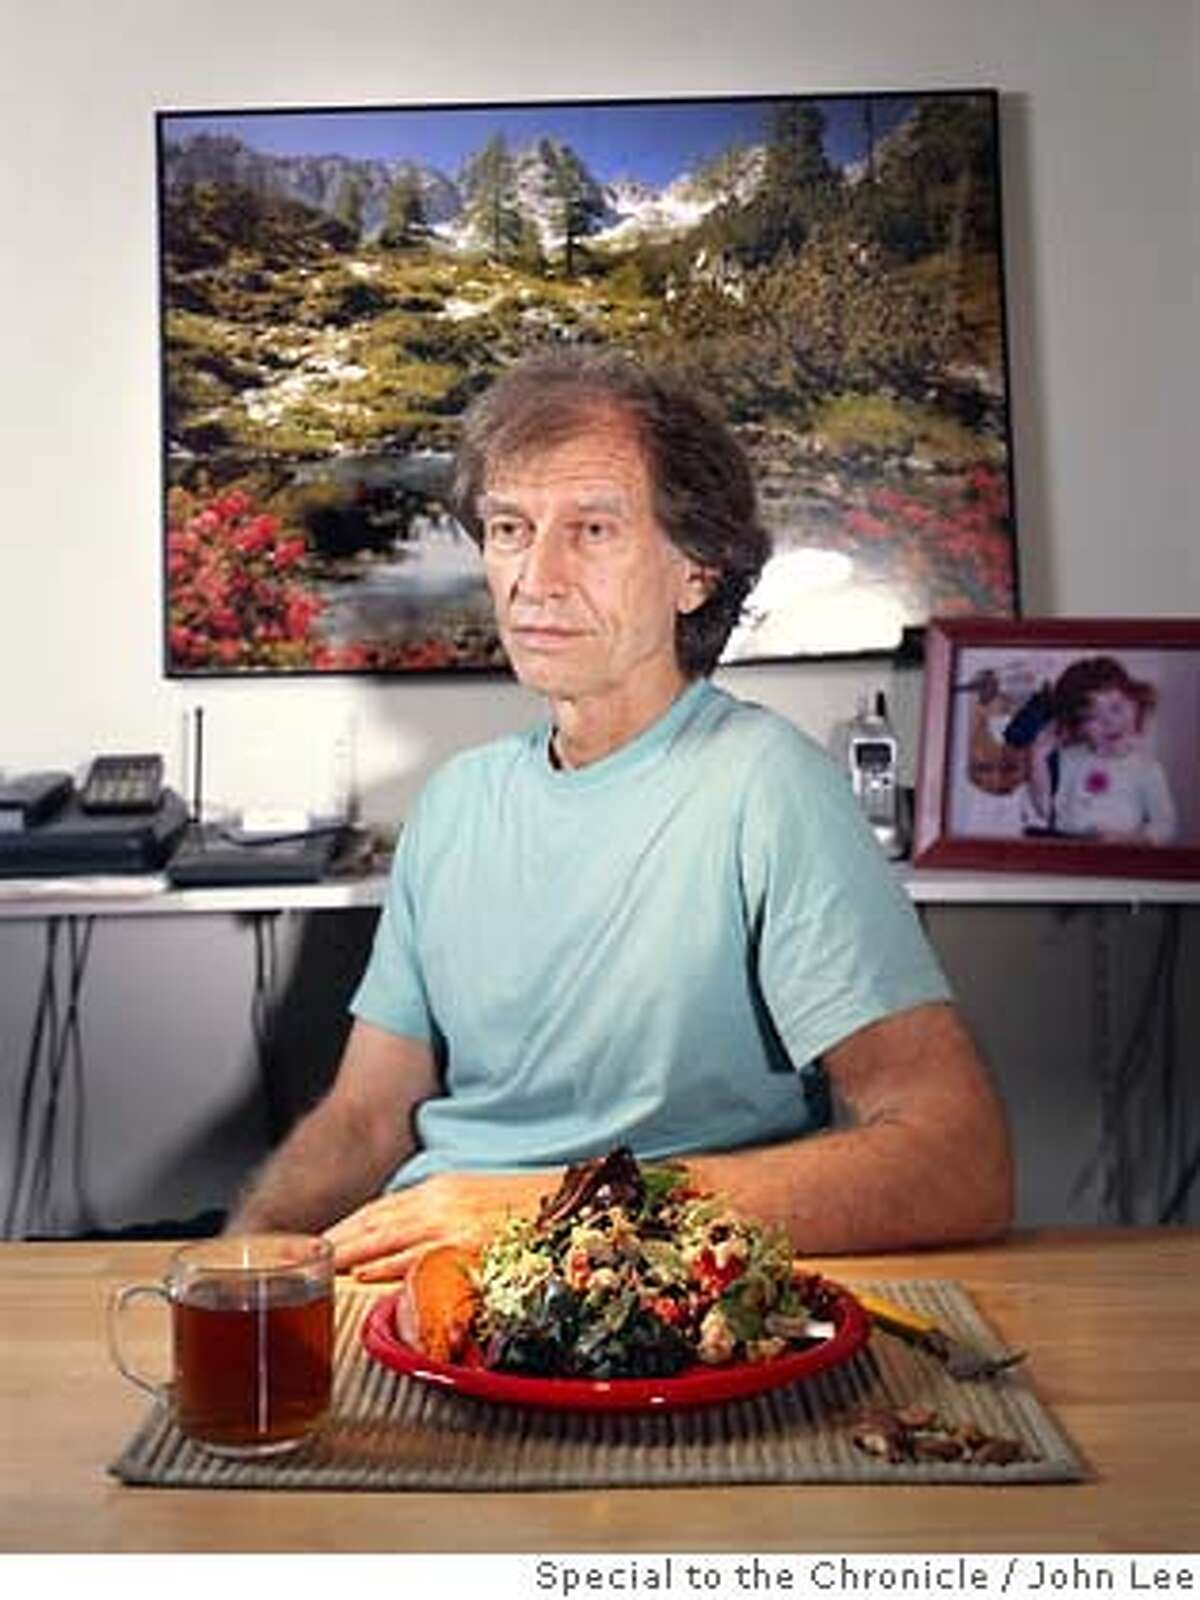 CALORIE_RESTRICTION_03_JOHNLEE.JPG COTATI, CALIFORNIA - AUG 8: Calorie restriction practitioner Barry Gamble (cq), sitting at his dining table with a typical day's worth of food on his plate. By JOHN LEE/